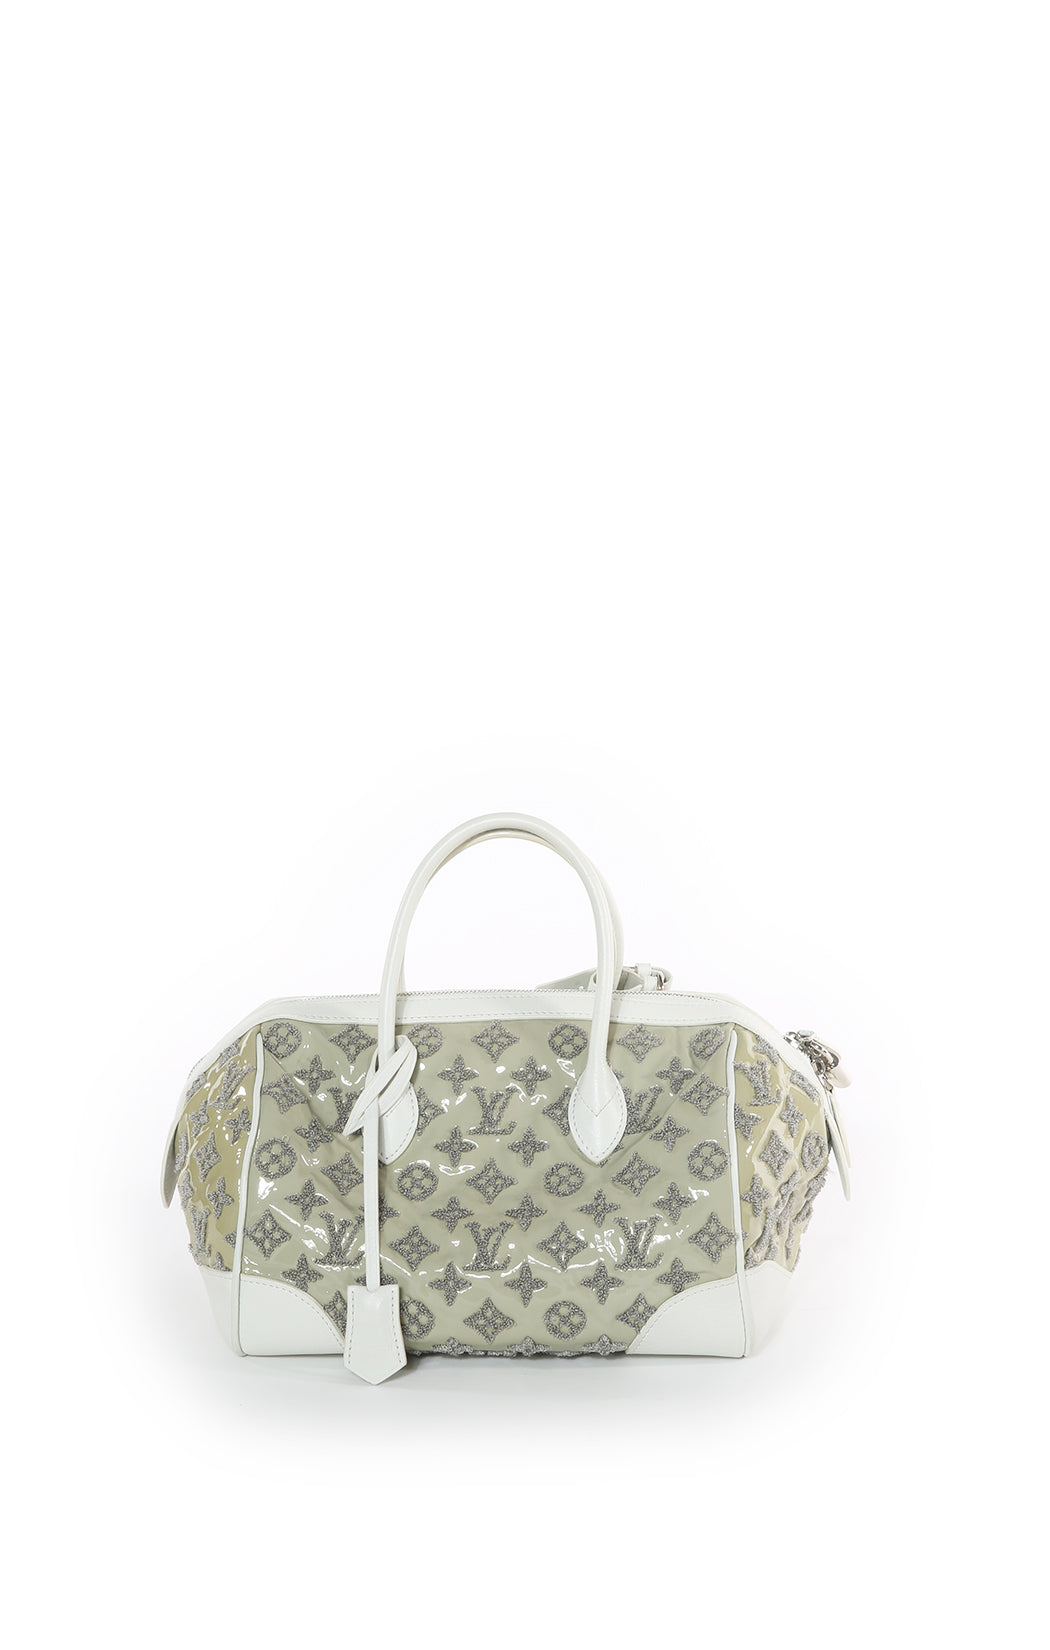 Front view of LOUIS VUITTON Handbag Size: 11.5 in x 8 in x 8 in